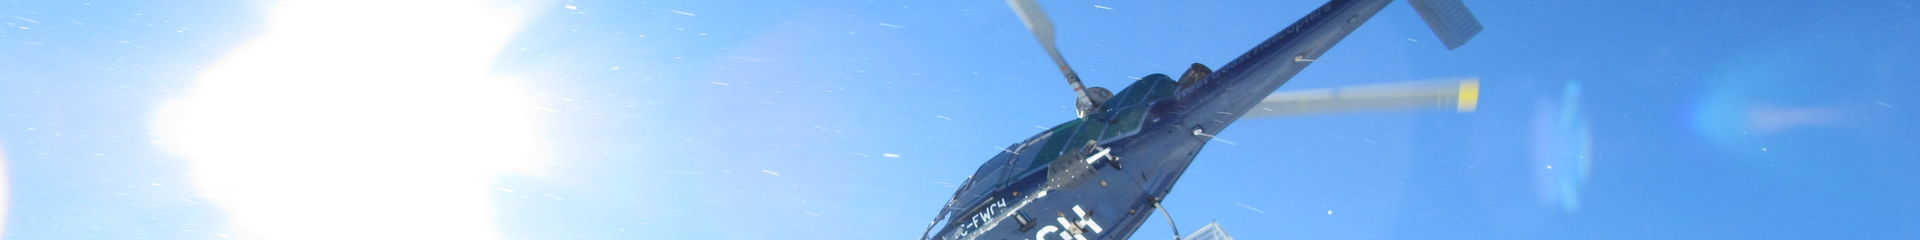 Heli Skiing in Bella Coola...what to expect on a heli ski trip